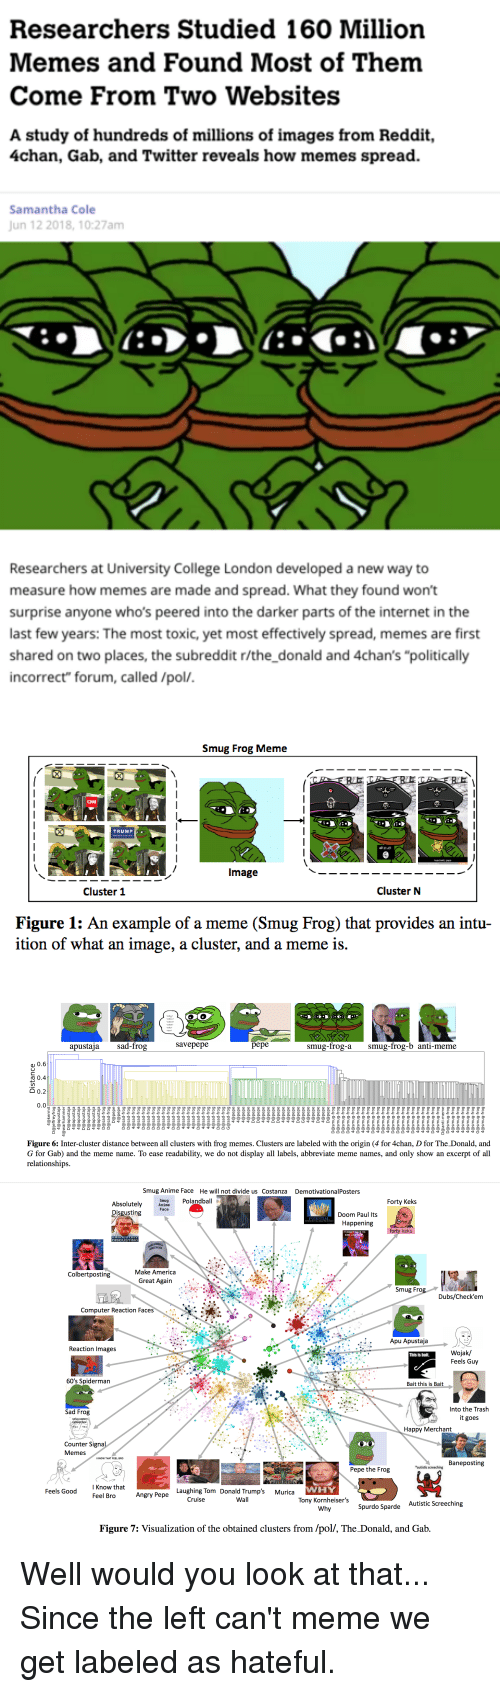 "Pepe the Frog: Researchers Studied 160 Milliorn  Memes and Found Most of Them  Come From Two Websites  A study of hundreds of millions of images from Reddit,  4chan, Gab, and Twitter reveals how memes spread.  Samantha Cole  Jun 12 2018,10:27am  产ブ  Researchers at University College London developed a new way to  measure how memes are made and spread. What they found won't  surprise anyone who's peered into the darker parts of the internet in the  last few years: The most toxic, yet most effectively spread, memes are first  shared on two places, the subreddit r/the_donald and 4chan's ""politically  incorrect"" forum, called /pol/   Smug Frog Meme  Image  Cluster 1  Cluster N  Figure 1: An example of a meme (Smug Frog) that provides an intu-  ition of what an image, a cluster, and a meme is.   When?  Where?  What?  Who?  How  apustaja sad-frog  savepepe  pepe  smug-frog-asmug-frog-b anti-meme  0.6  o 0.4  0.2  0.0  Figure 6: Inter-cluster distance between all clusters with frog memes. Clusters are labeled with the origin (4 for 4chan, D for The Donald, and  G for Gab) and the meme name. To ease readability, we do not display all labels, abbreviate meme names, and only show an excerpt of all  relationships.   Smug Anime Face  He will not divide us Costanza  DemotivationalPosters  Smug Polandball  Anime  Forty Keks  Absolutely  Disgusting  Face  Doom Paul Its  Happening  POTENTIAI  forty keks  IT DIDN'T MAVE TO  END LIKE  ABSOLUTELY  DISGUSTIN  REAT AGAIN  Make America  Colbertposting  Great Again .  Smug Frog  Dubs/Check'em  Computer Reaction Faces  Apu Apustaja  Reaction Images  Wojak/  Feels Guy  This is bait.  60's Spiderman  Bait this is Bait  Into the Trash  it goes  Sad Frog  smug eastern  Happy Merchant  Counter Signa  Memes  IKNOW THAT FEEL BRO  Baneposting  autistic screeching  Pepe the Frog  I Know that  Feel Bro  WHY  Tony Kornheiser's  Why  Feels Good  Laughing Tom Donald Trump's Murica  Angry Pepe  Cruise  Well  Autistic Screeching  Spurdo Sparde  Figure 7: Visualization of the obtained clusters from /pol/, The Donald, and Gab Well would you look at that... Since the left can't meme we get labeled as hateful."